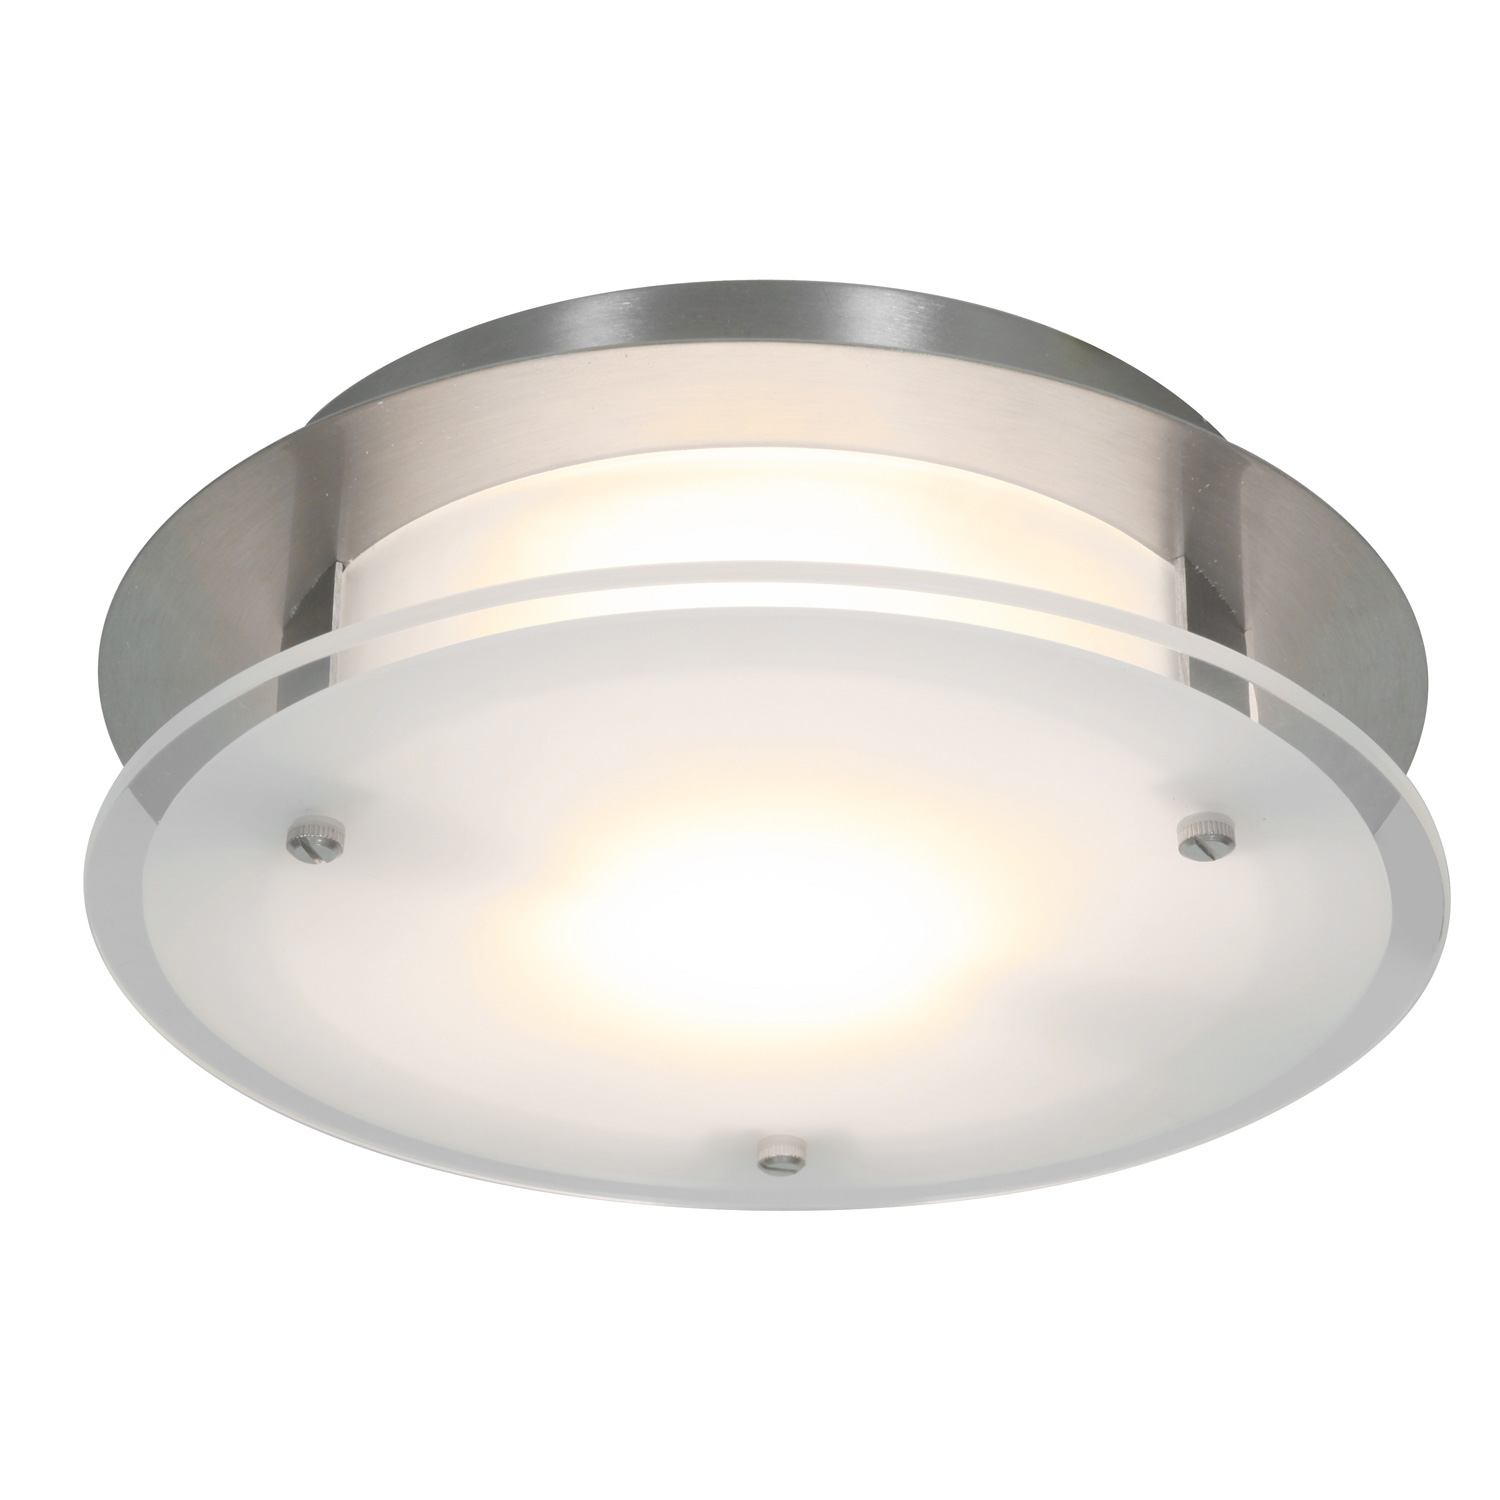 Vision Round Wall or Ceiling Light by Access 50036BSFST